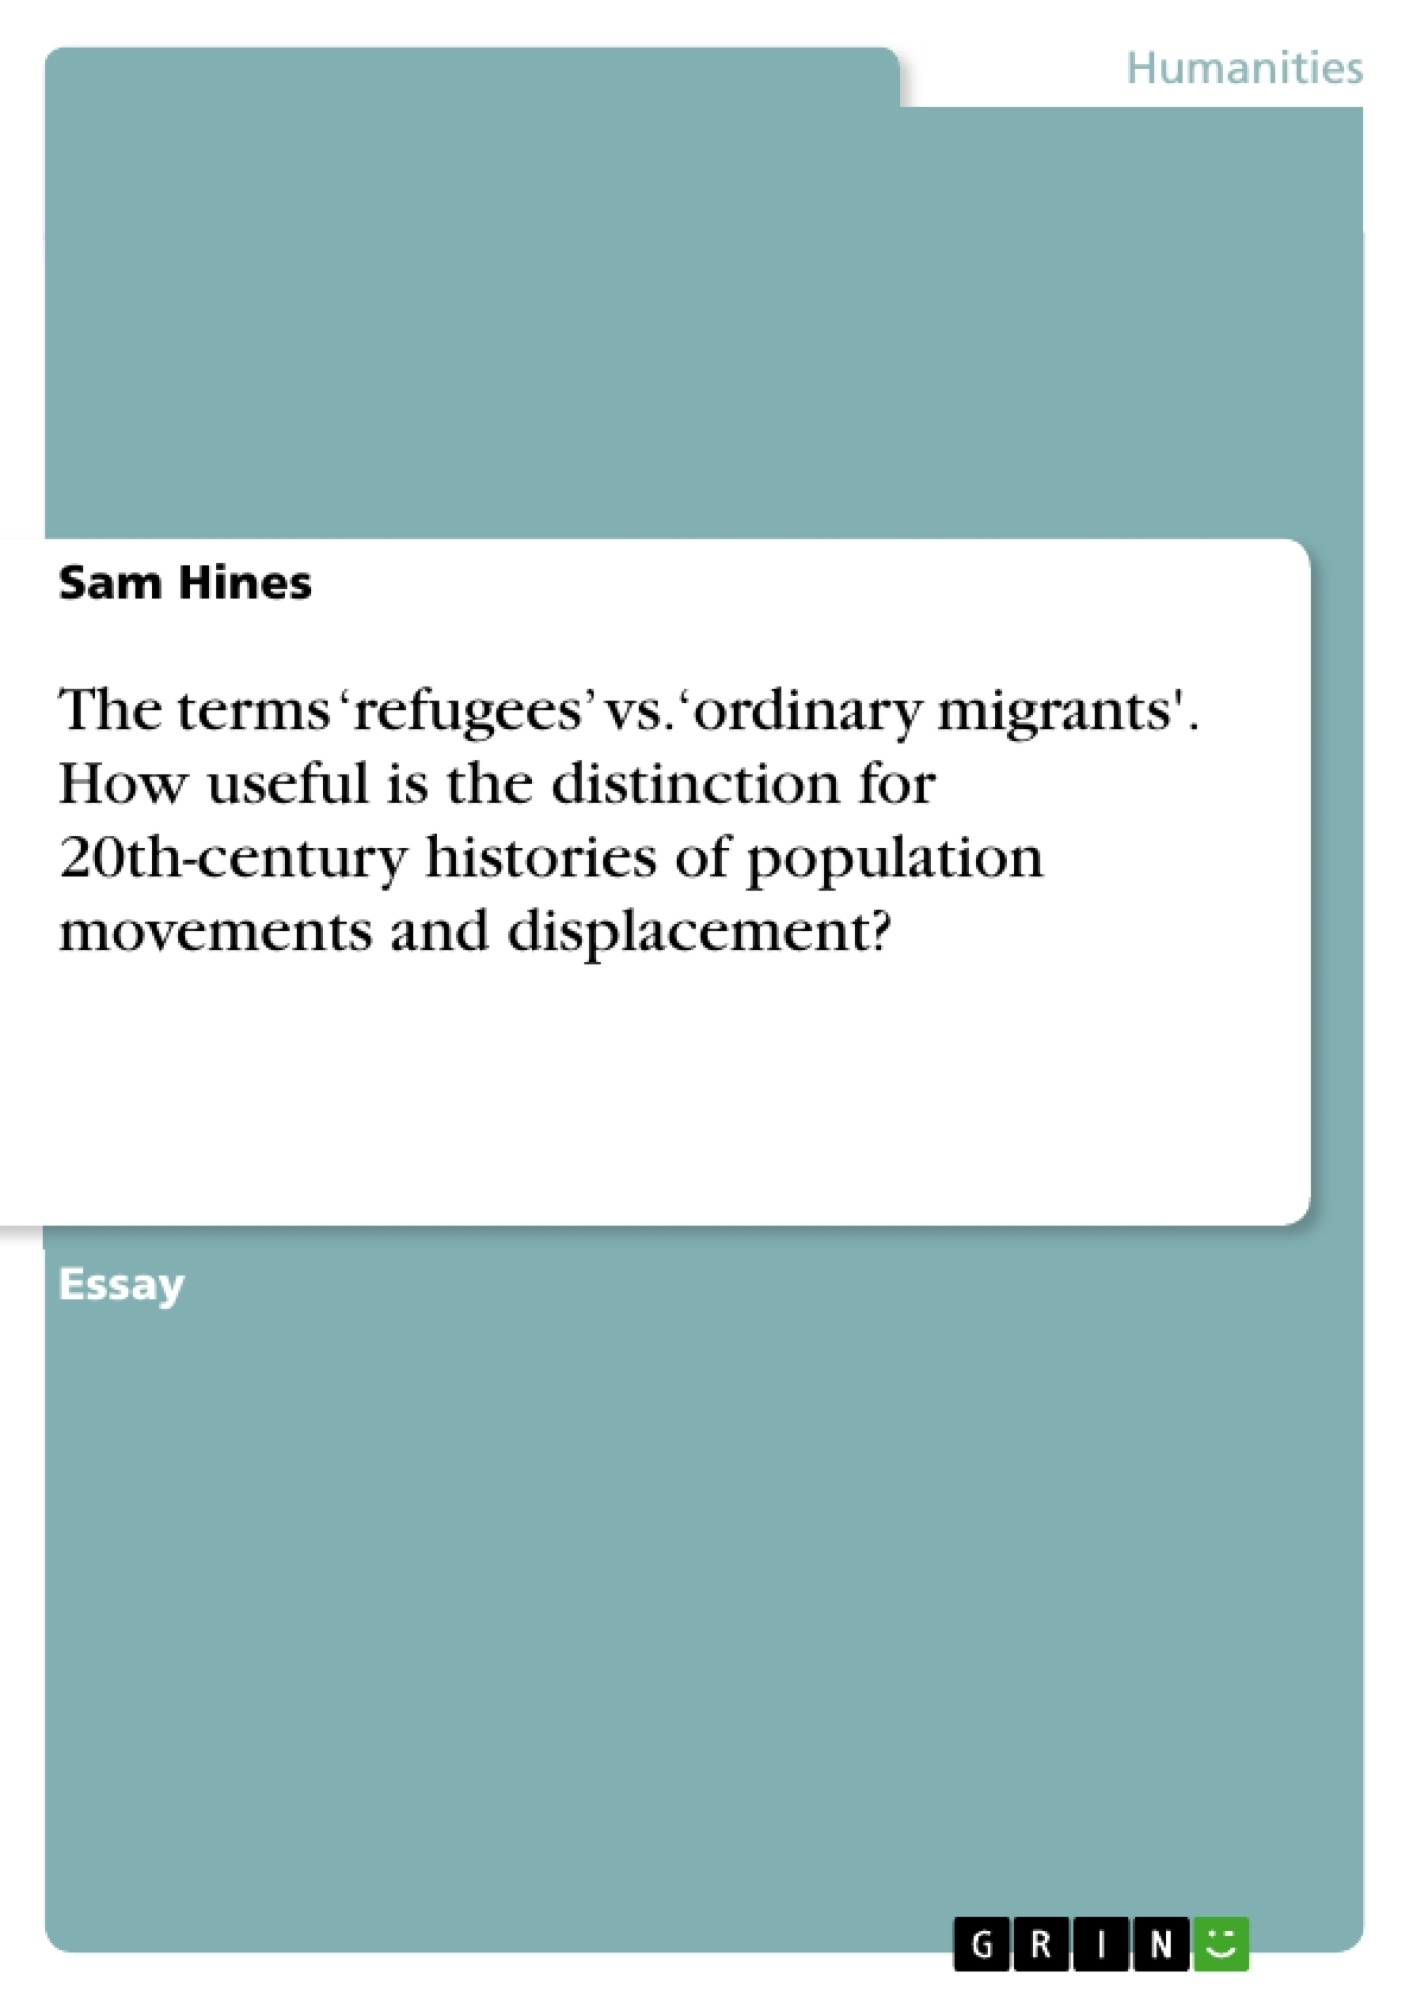 Title: The terms 'refugees' vs. 'ordinary migrants'. How useful is the distinction for 20th-century histories of population movements and displacement?